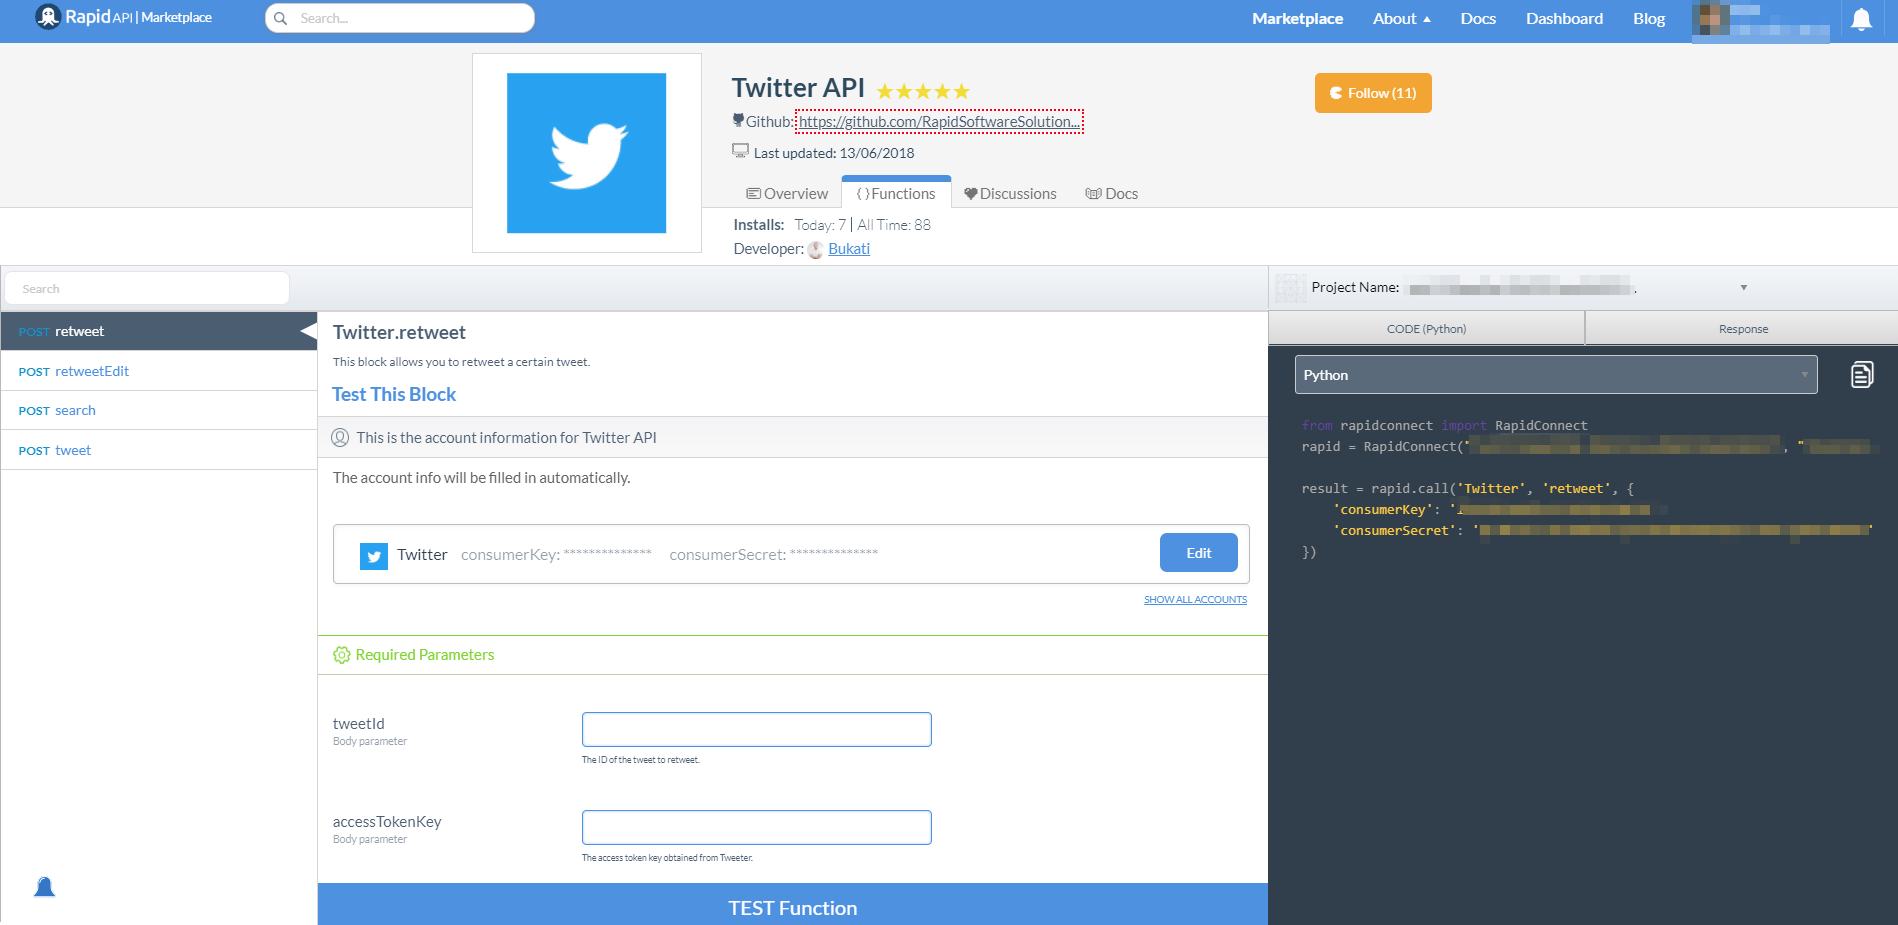 How To Use the Twitter API with Python [4 Easy Steps]